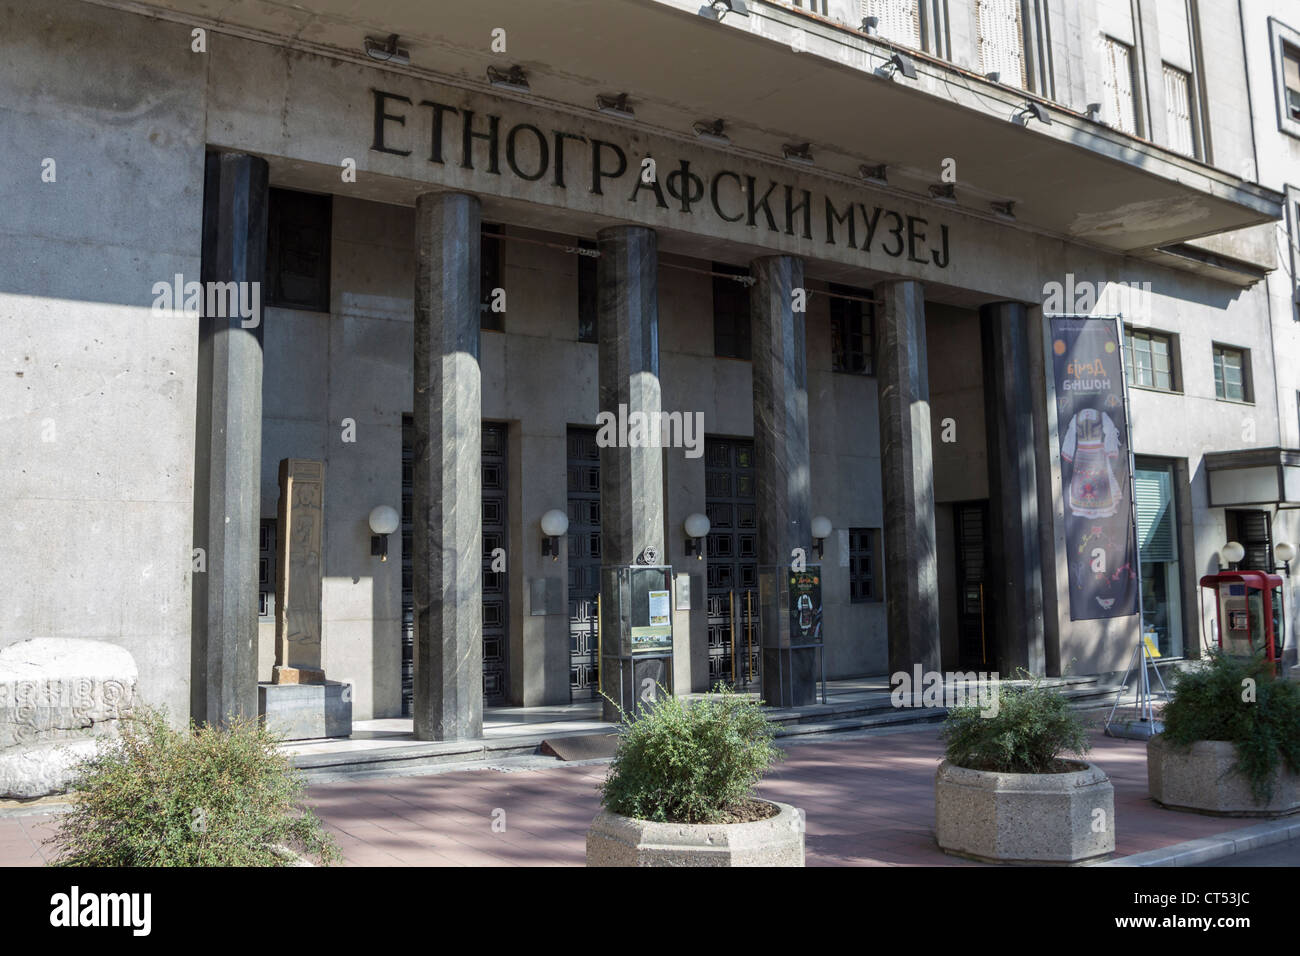 Belgrade city in Serbia. Studenski Trg Ethnographic Museum main entrance - Stock Image